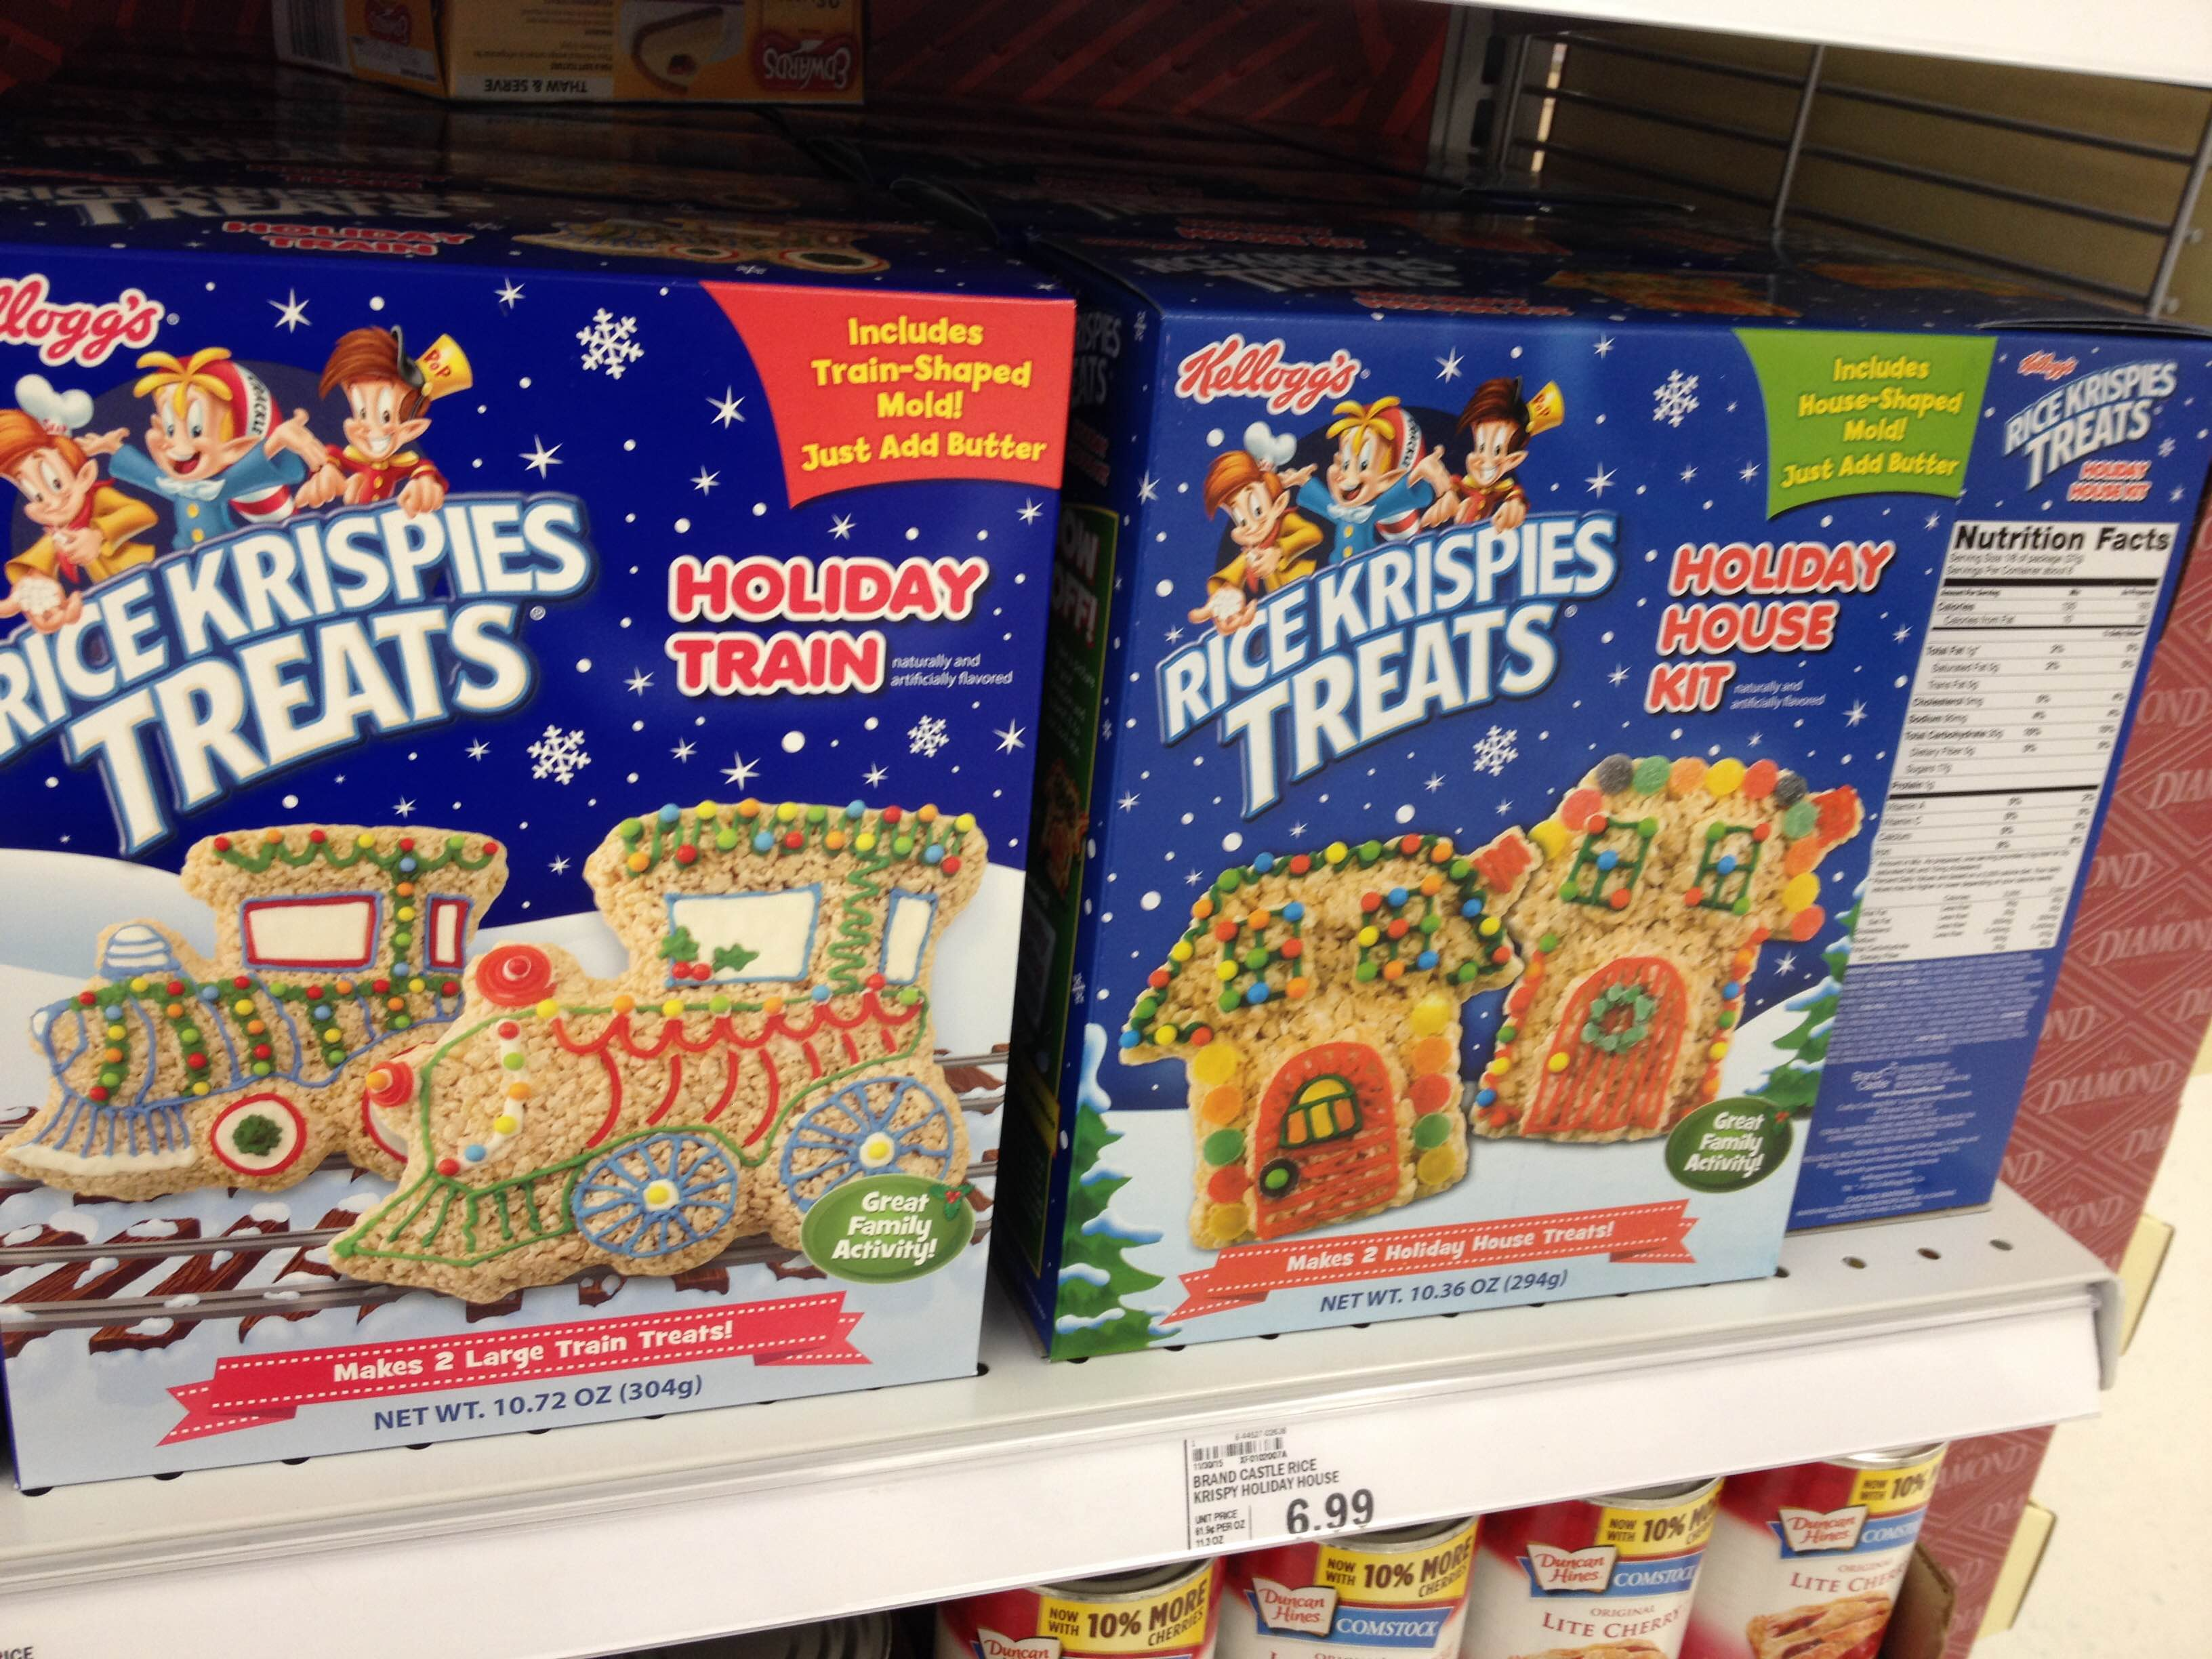 Christmas Colored Rice Krispies With Spooned Spotted Treats Holiday Train And